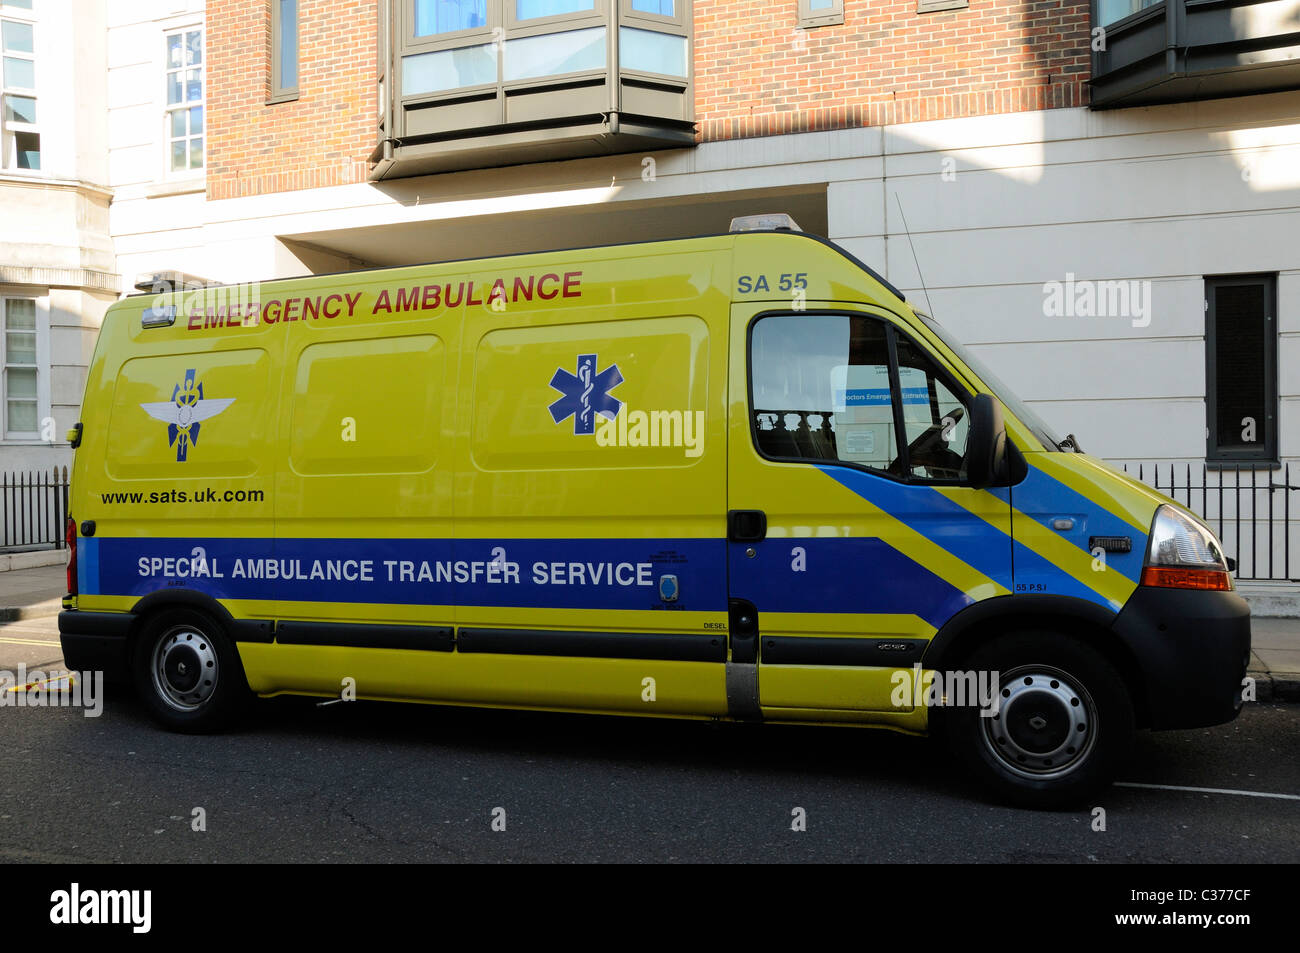 Special Ambulance Transfer Service - Stock Image